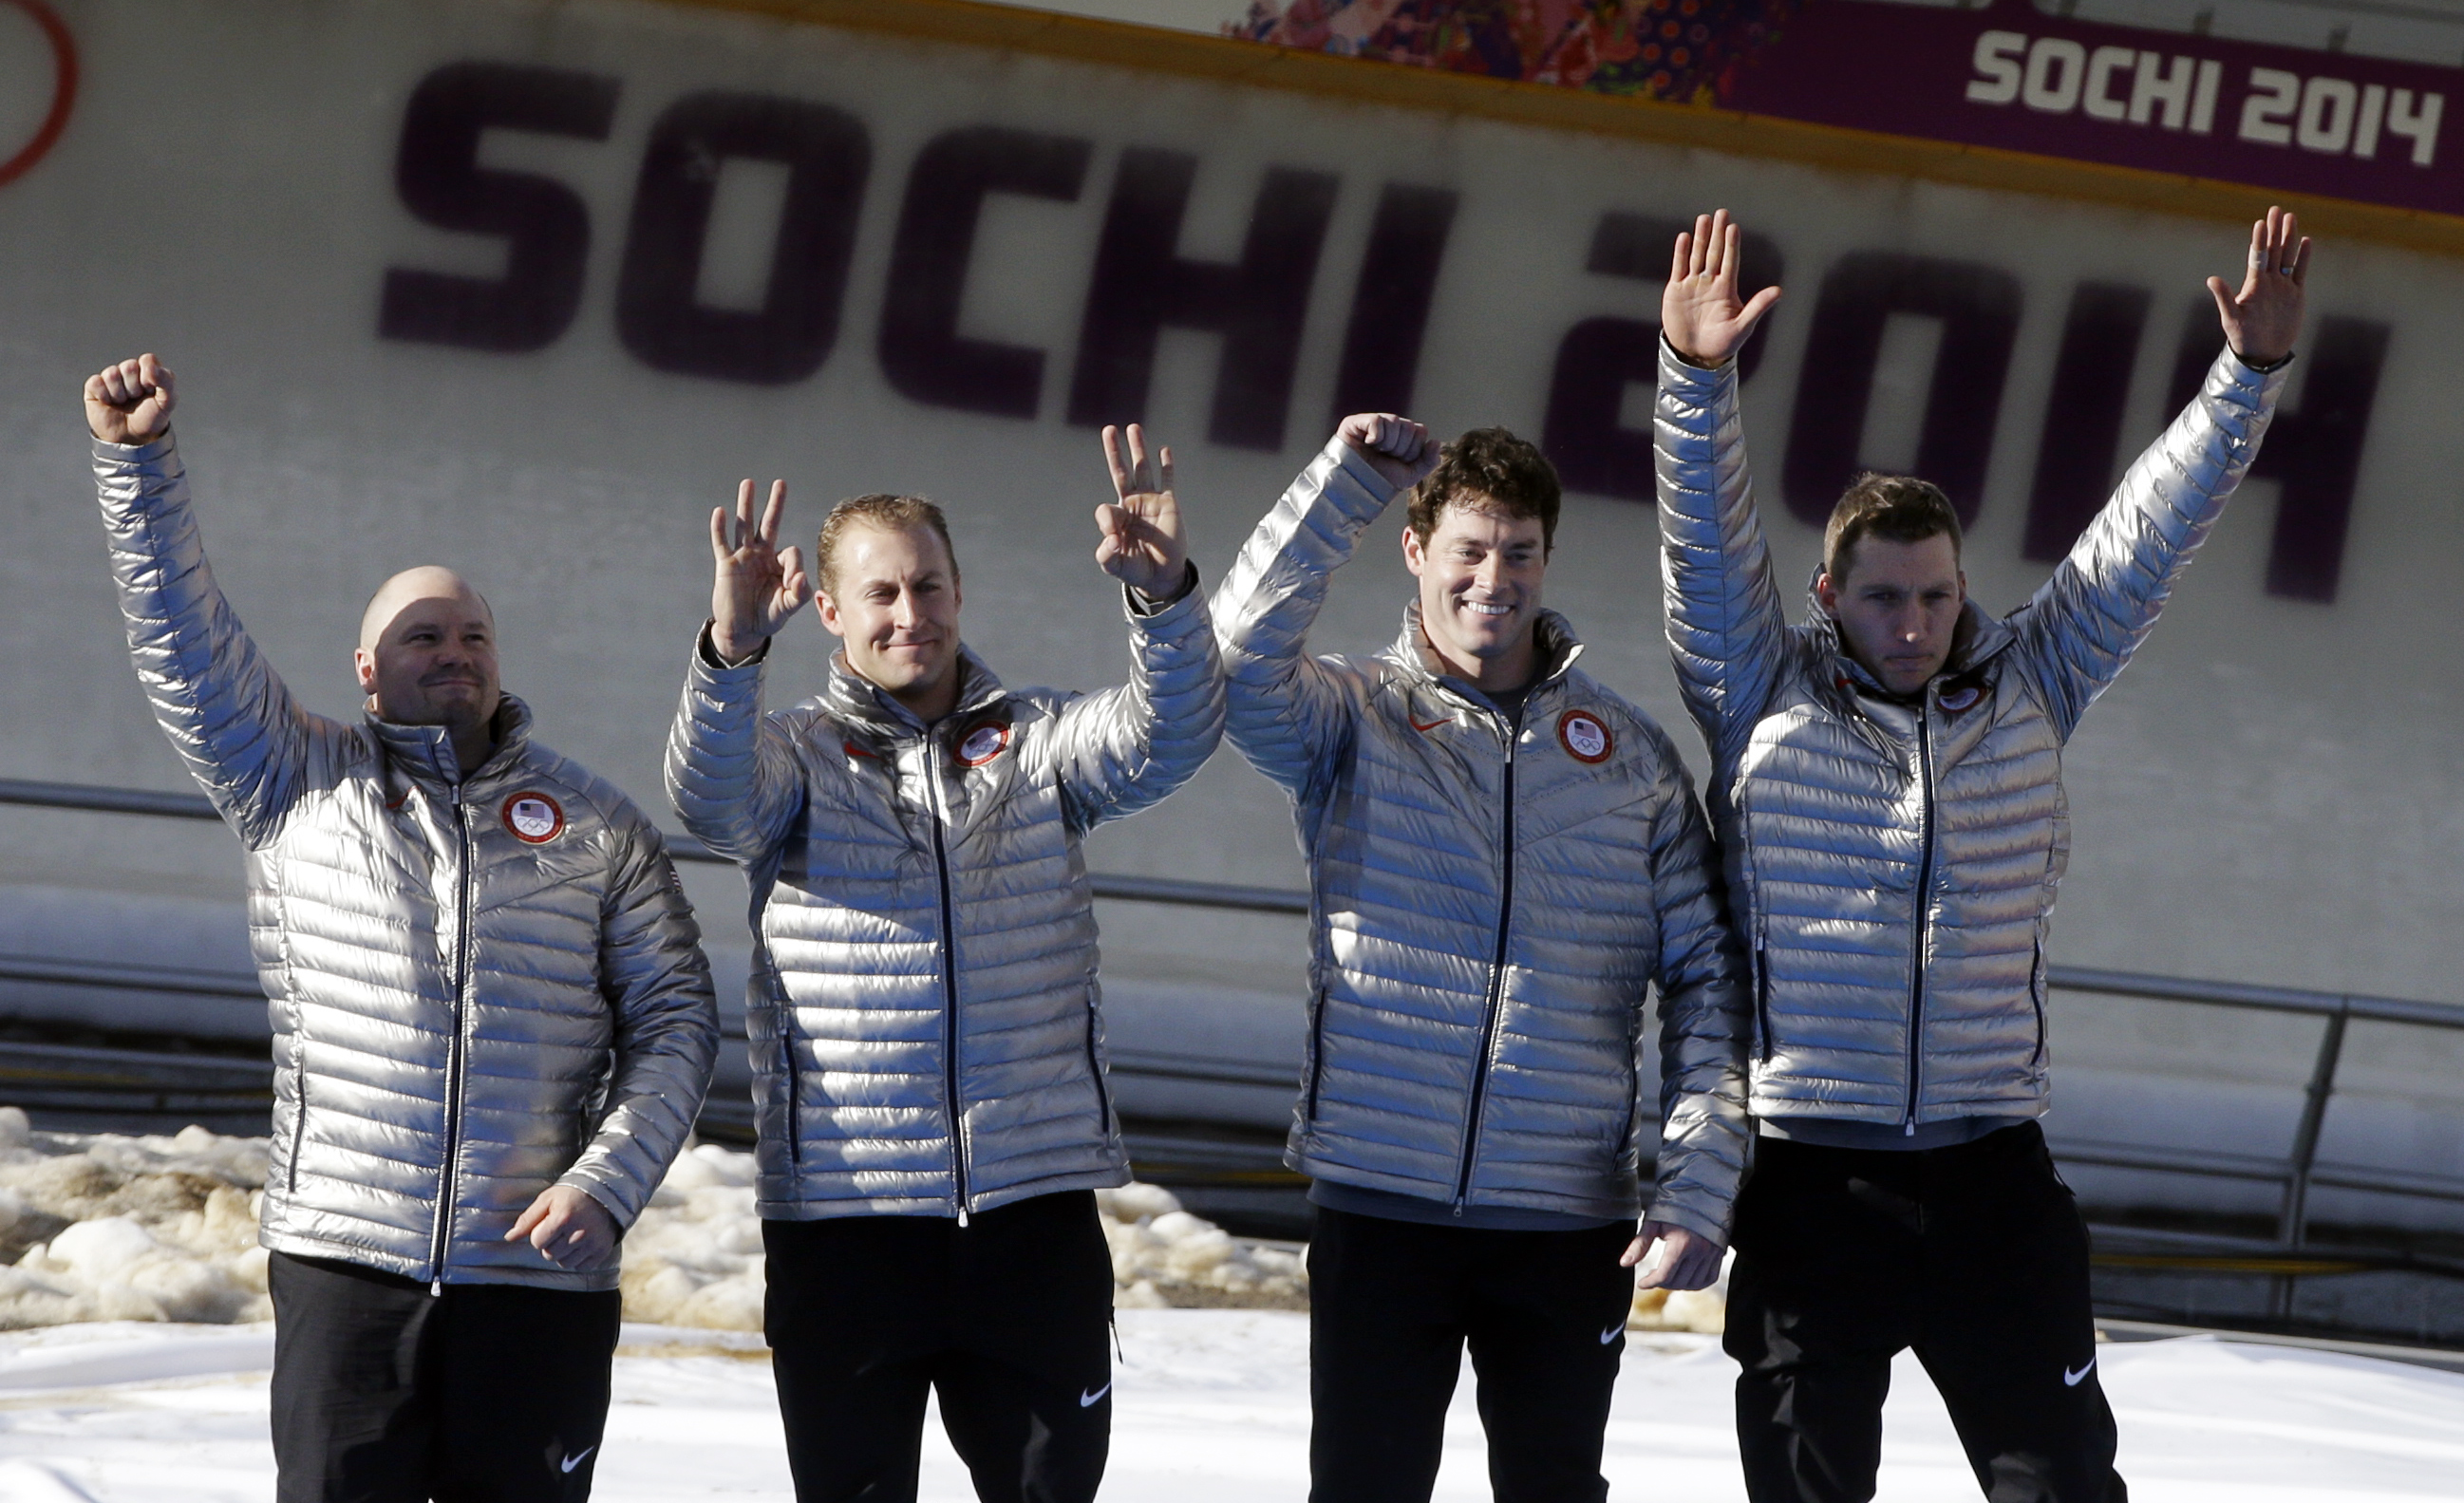 The team from the United States USA-1, with Steven Holcomb, Curtis Tomasevicz, Steven Langton and Christopher Fogt, celebrate after they won the bronze medals in the men's four-man bobsled competition final at the 2014 Winter Olympics, Sunday, Feb. 23, 2014, in Krasnaya Polyana, Russia.(AP Photo/Dita Alangkara)